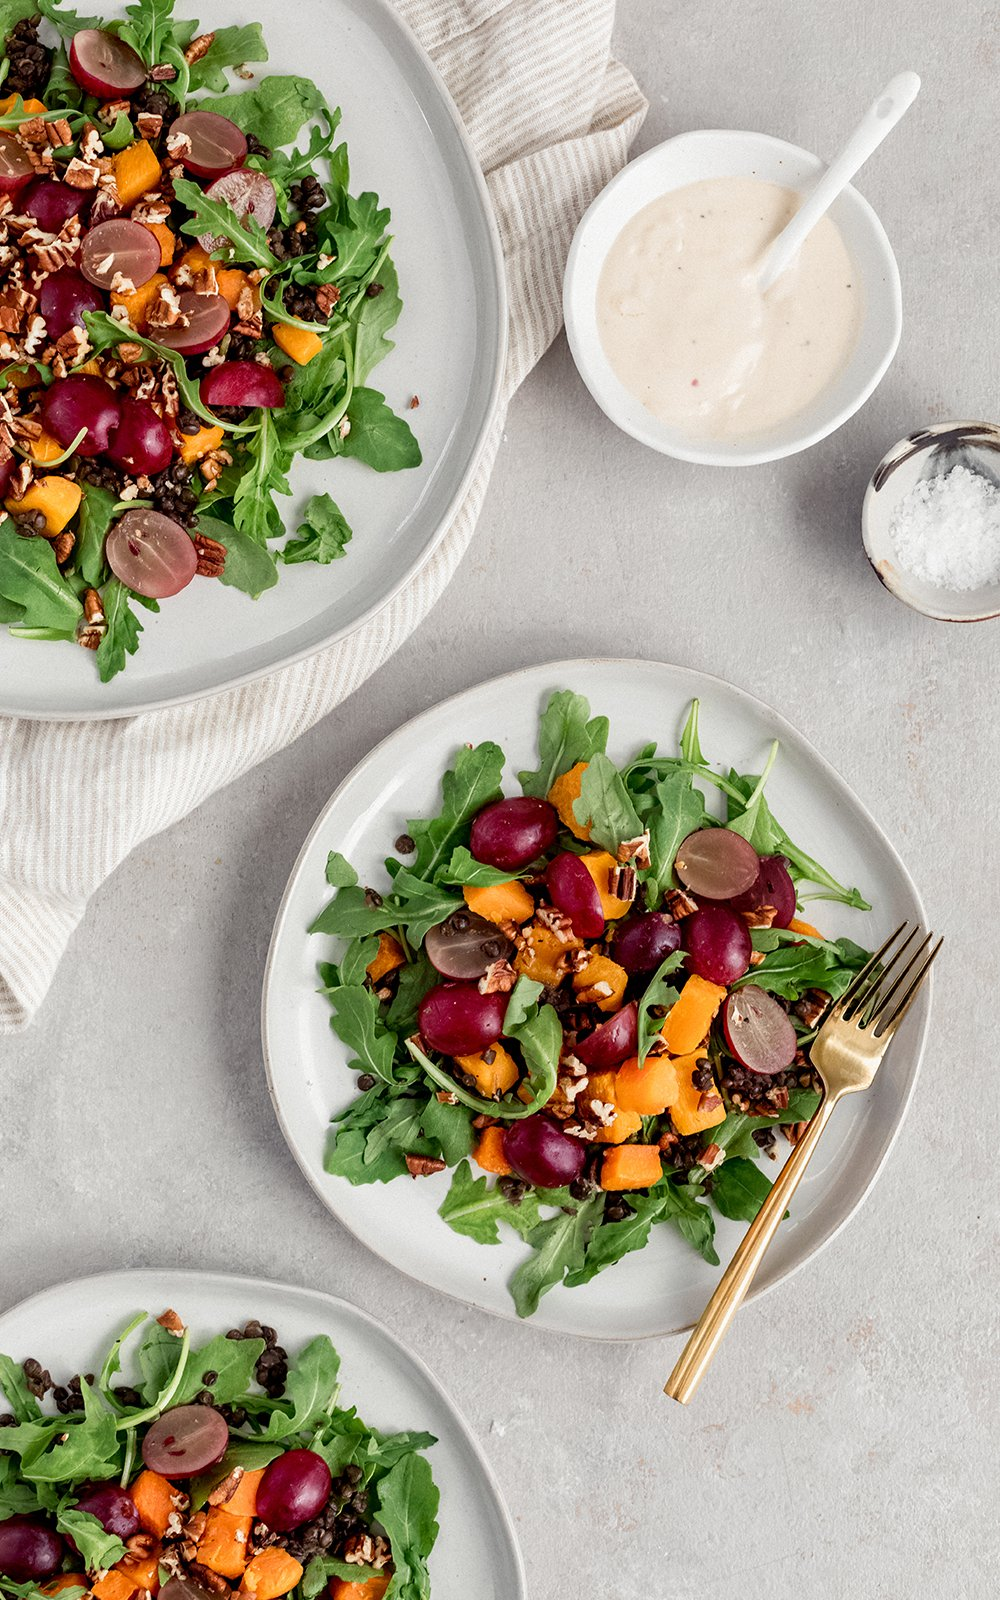 Winter roasted butternut squash black lentil salad with juicy grapes served over a bed of arugula and drizzled with a creamy tahini dressing! Full of texture, comforting and so delicious!